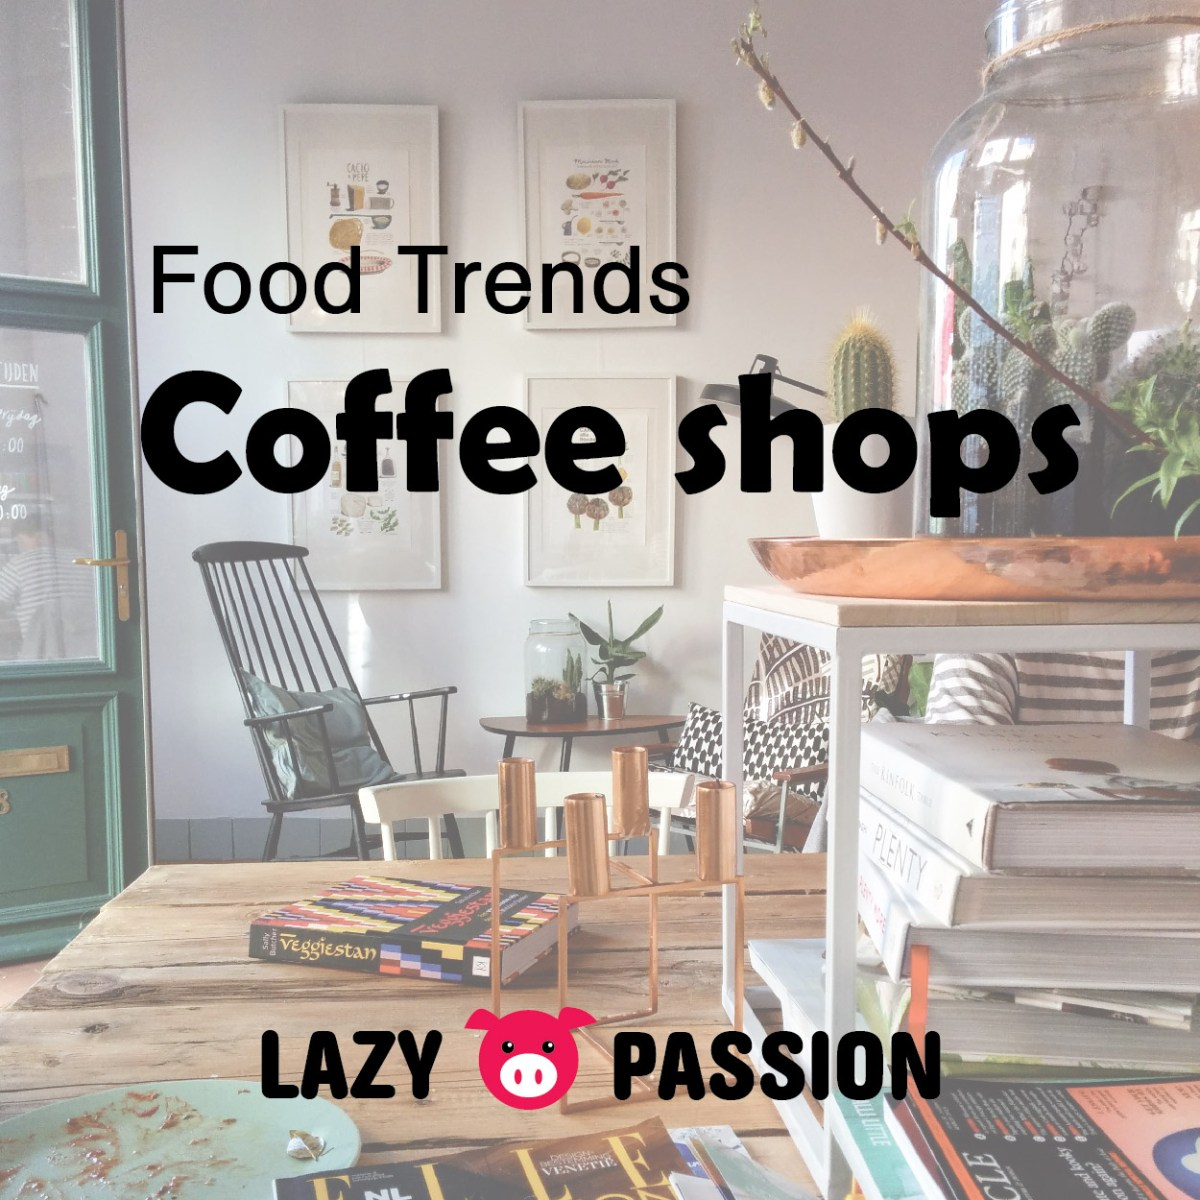 Food Trends: coffee shops